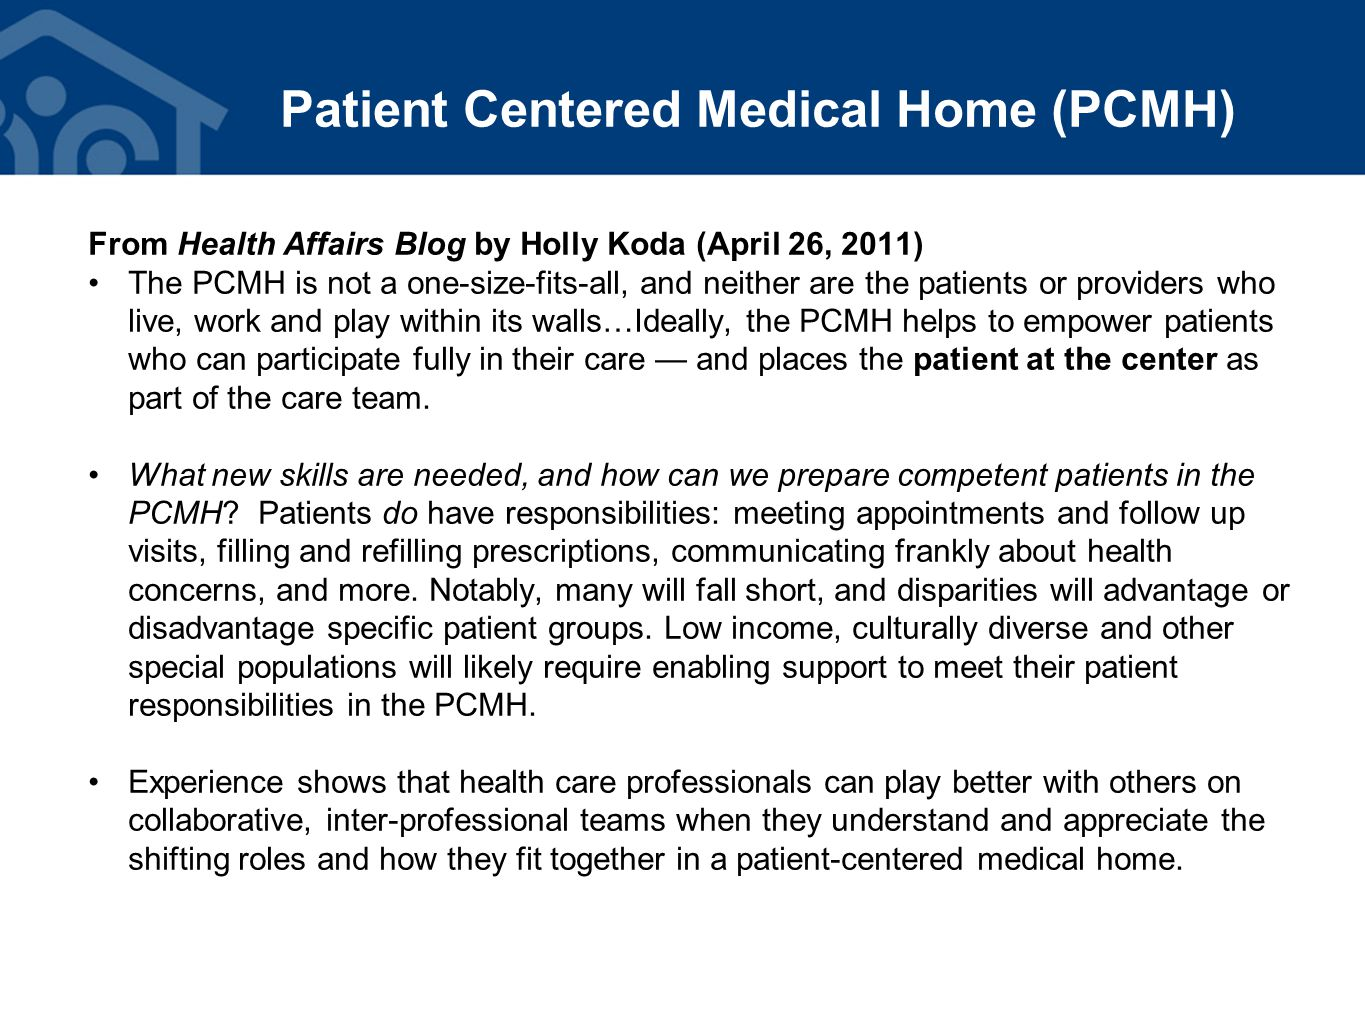 Patient Centered Medical Home (PCMH) From Health Affairs Blog by Holly Koda (April 26, 2011) The PCMH is not a one-size-fits-all, and neither are the patients or providers who live, work and play within its walls…Ideally, the PCMH helps to empower patients who can participate fully in their care — and places the patient at the center as part of the care team.